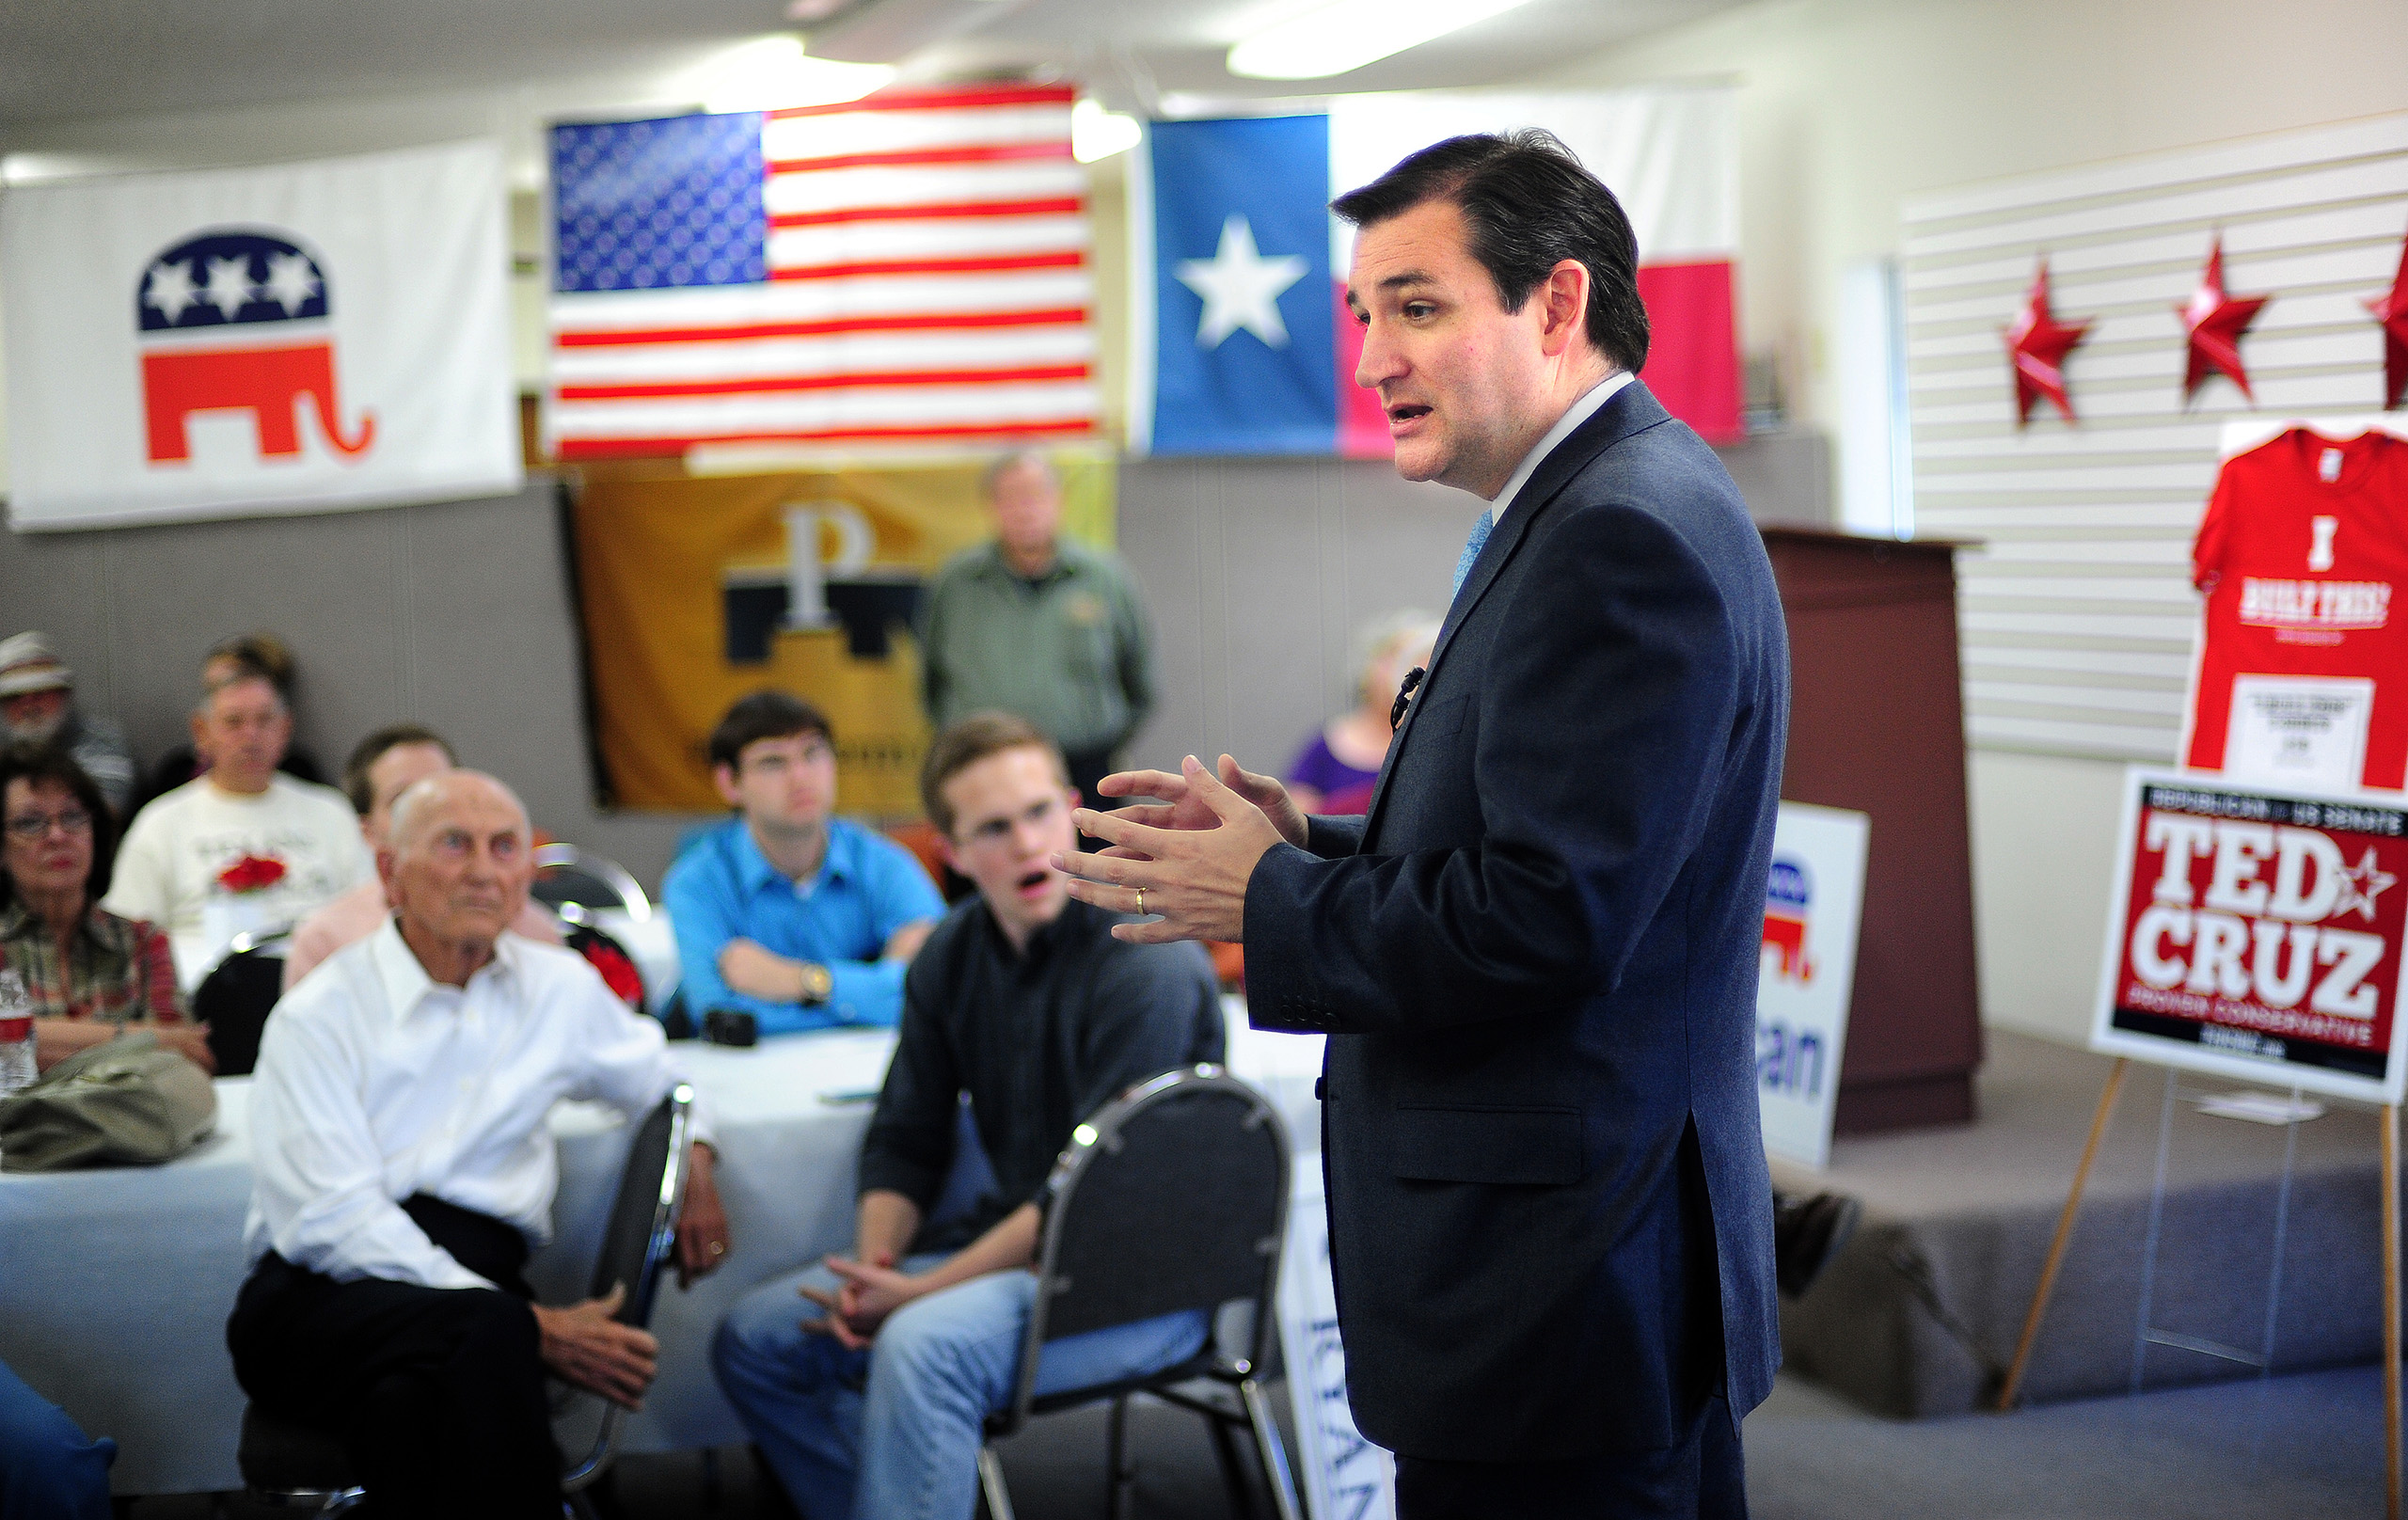 Republican Senate nominee Ted Cruz talks to a crowd of local supporters at the Taylor County Republican Headquarters in Abilene, Texas on Oct. 18, 2012.